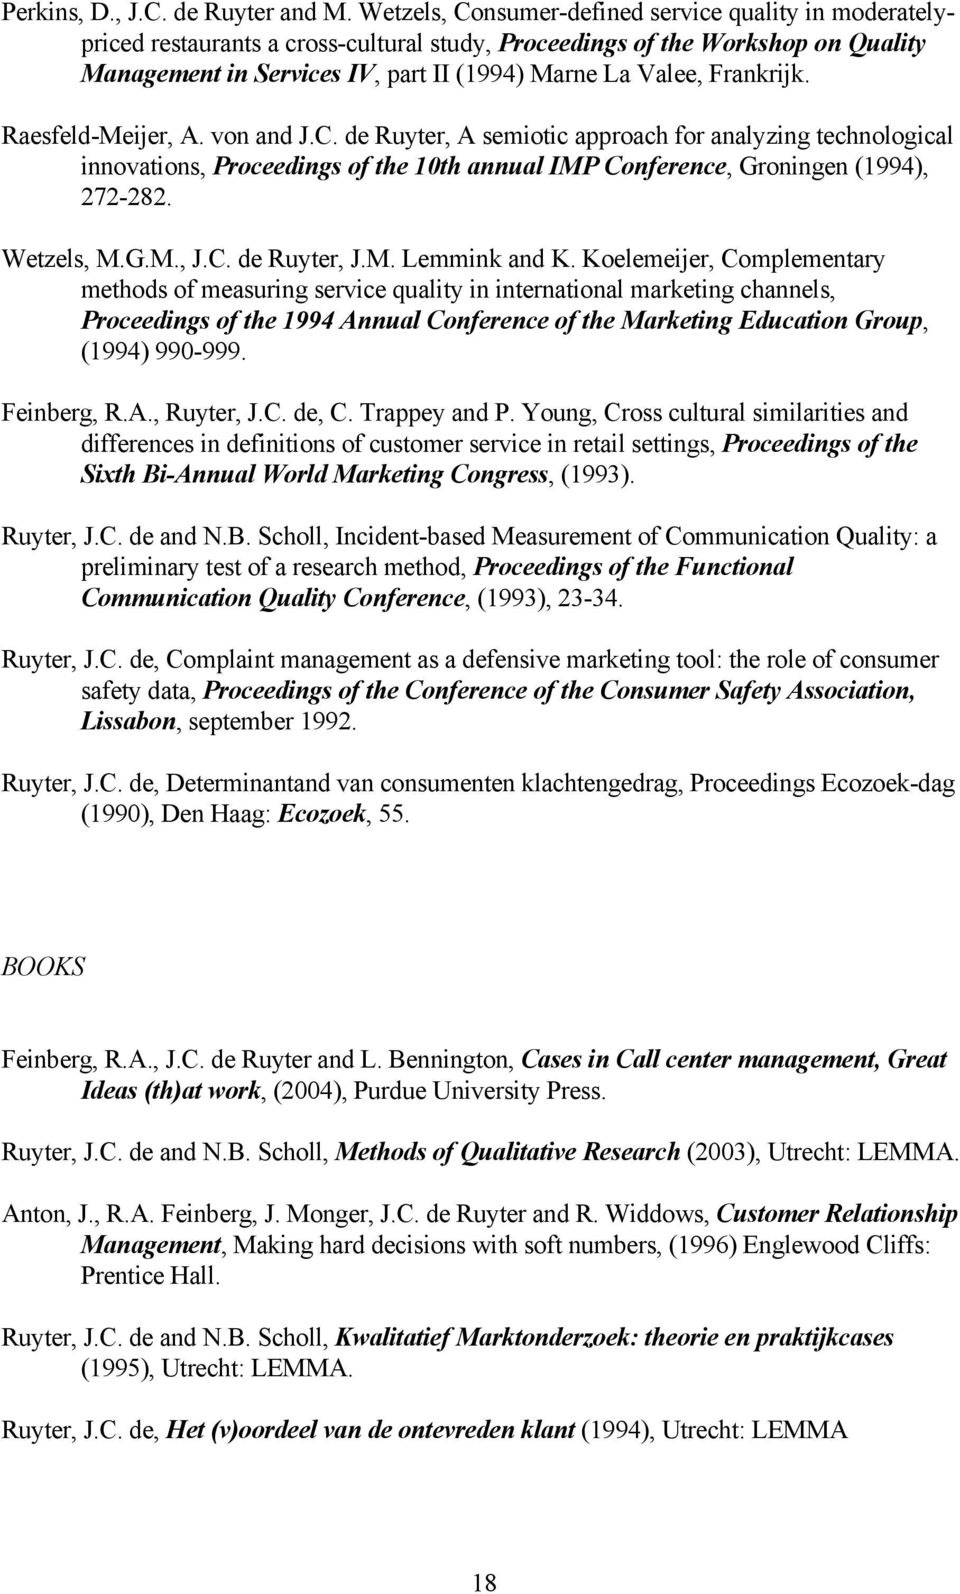 Frankrijk. Raesfeld-Meijer, A. von and J.C. de Ruyter, A semiotic approach for analyzing technological innovations, Proceedings of the 10th annual IMP Conference, Groningen (1994), 272-282.